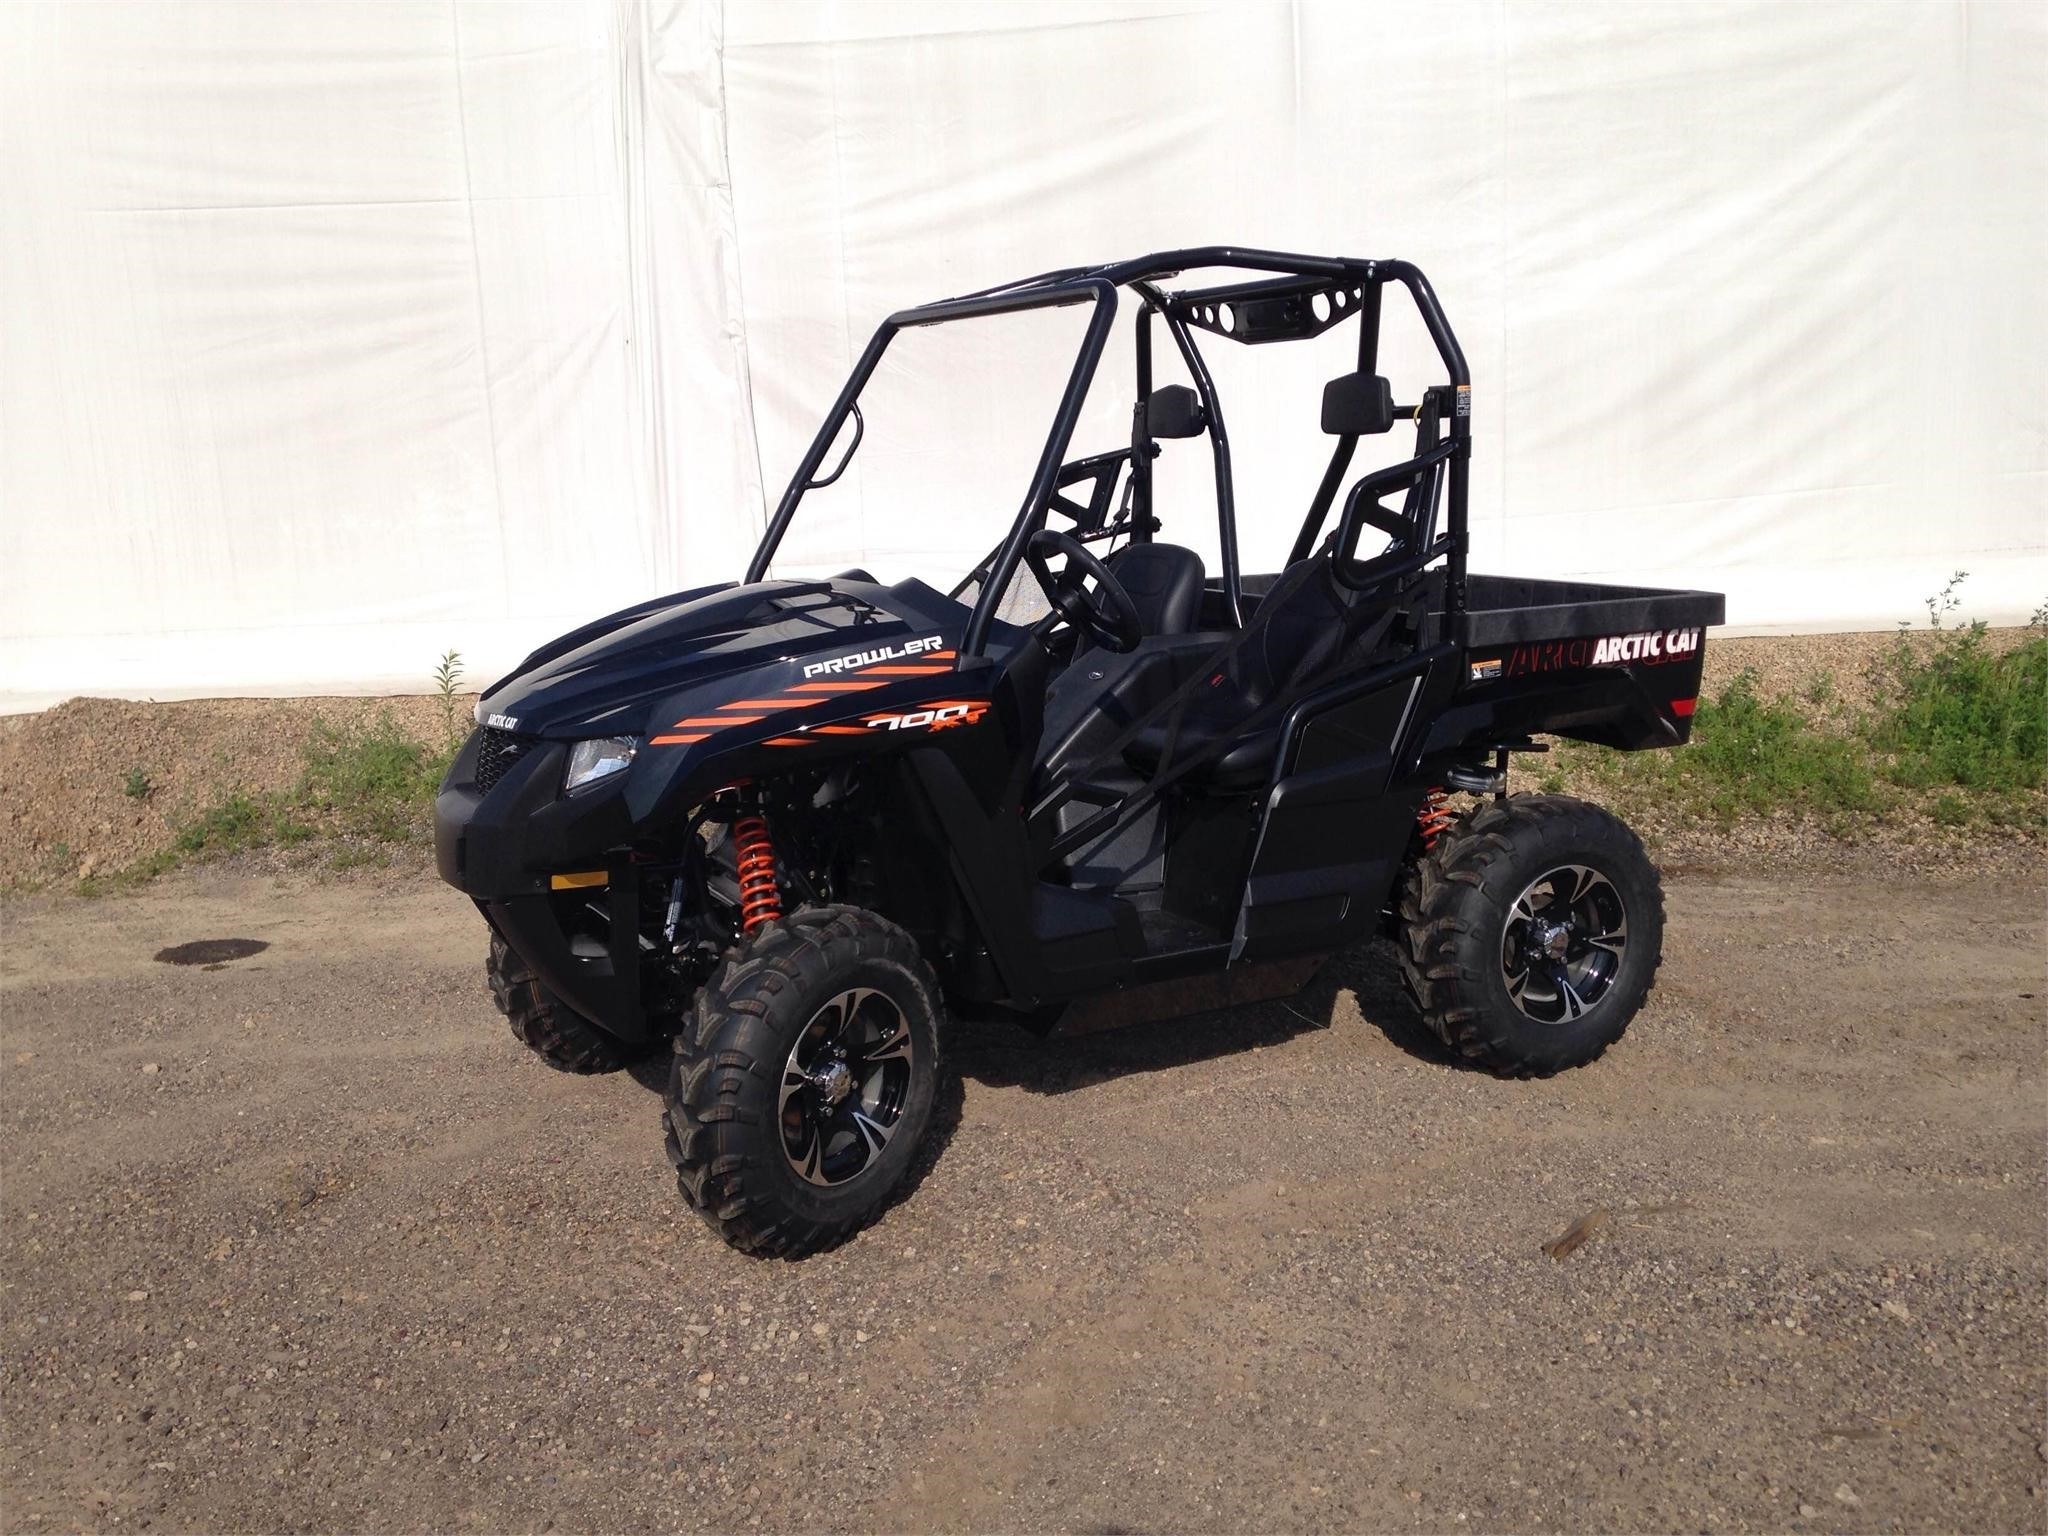 2016 Arctic Cat PROWLER 700 XT EPS ATVs and Utility Vehicle